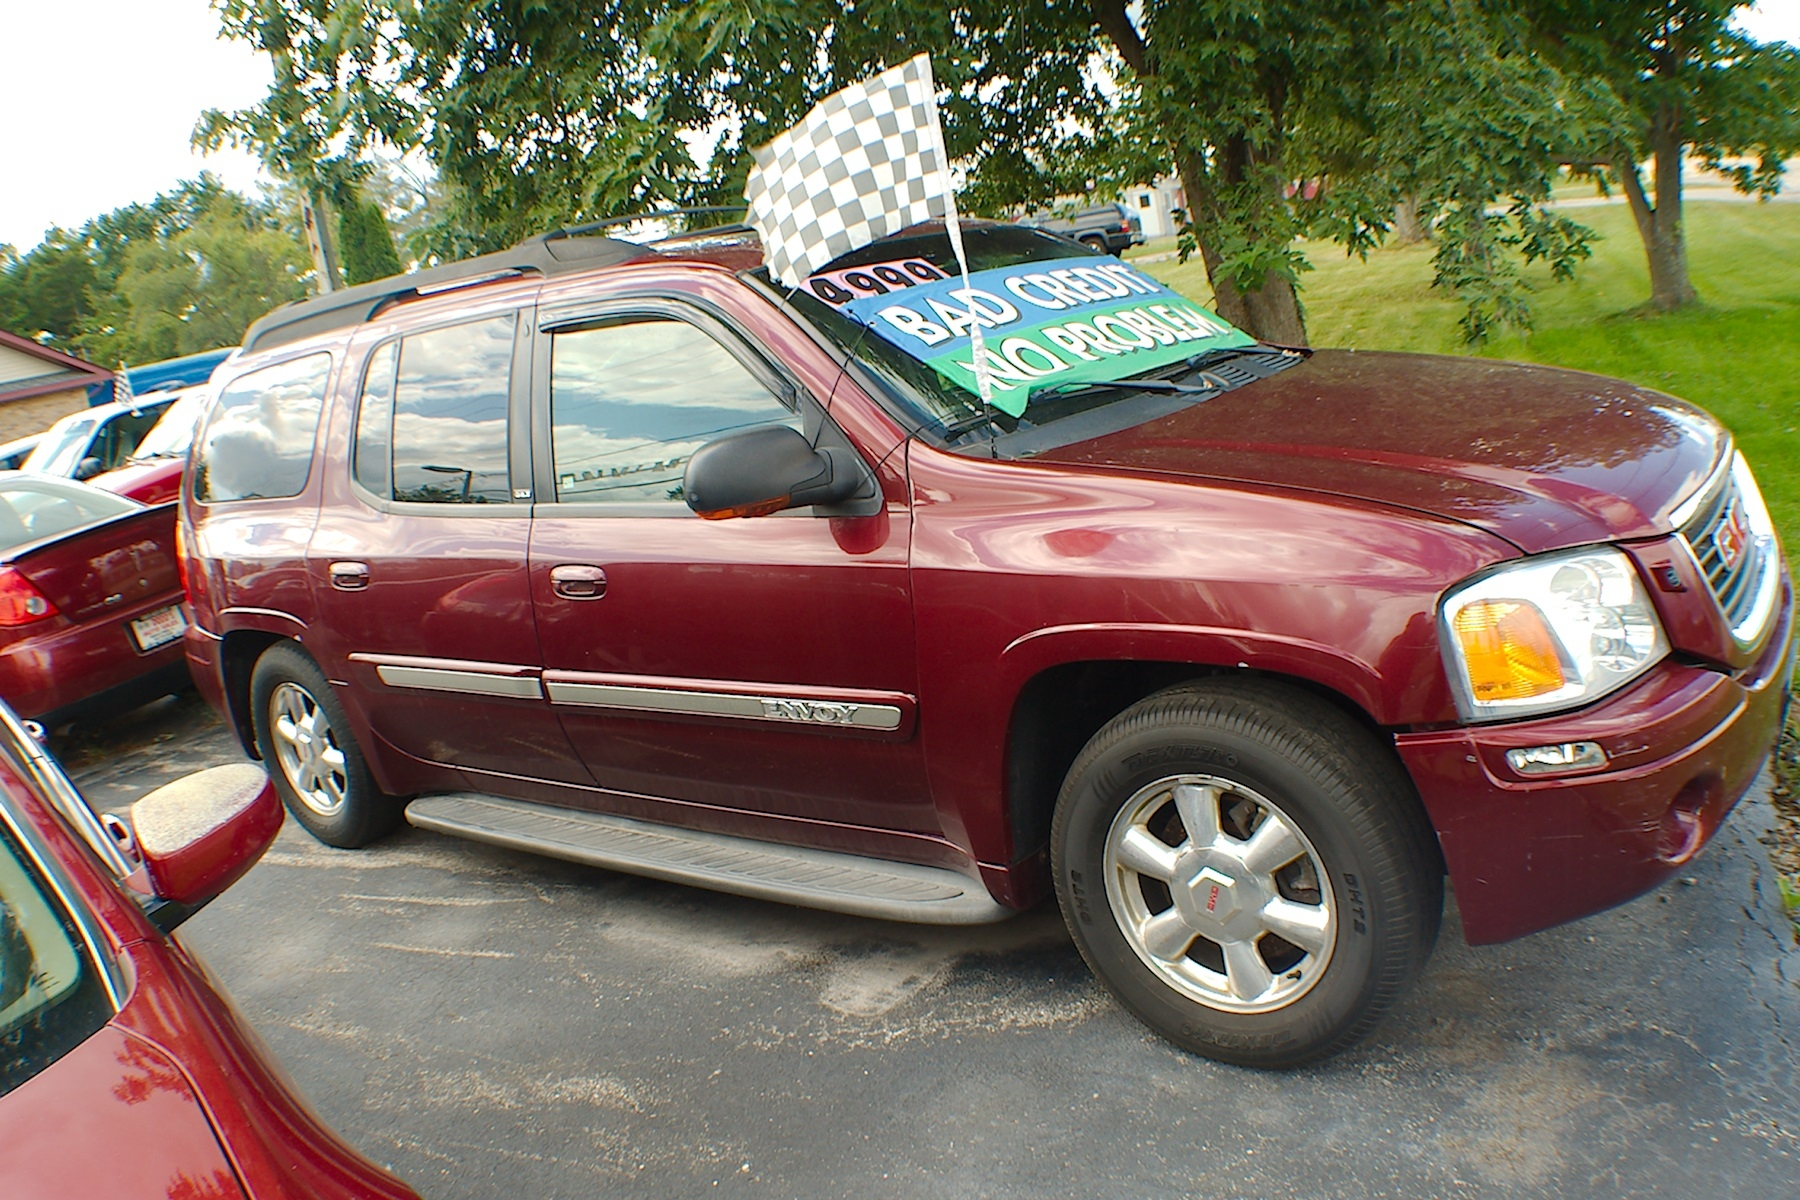 2003 GMC Envoy SLT XL Red SUV Sale Antioch Zion Waukegan Lake County Illinois